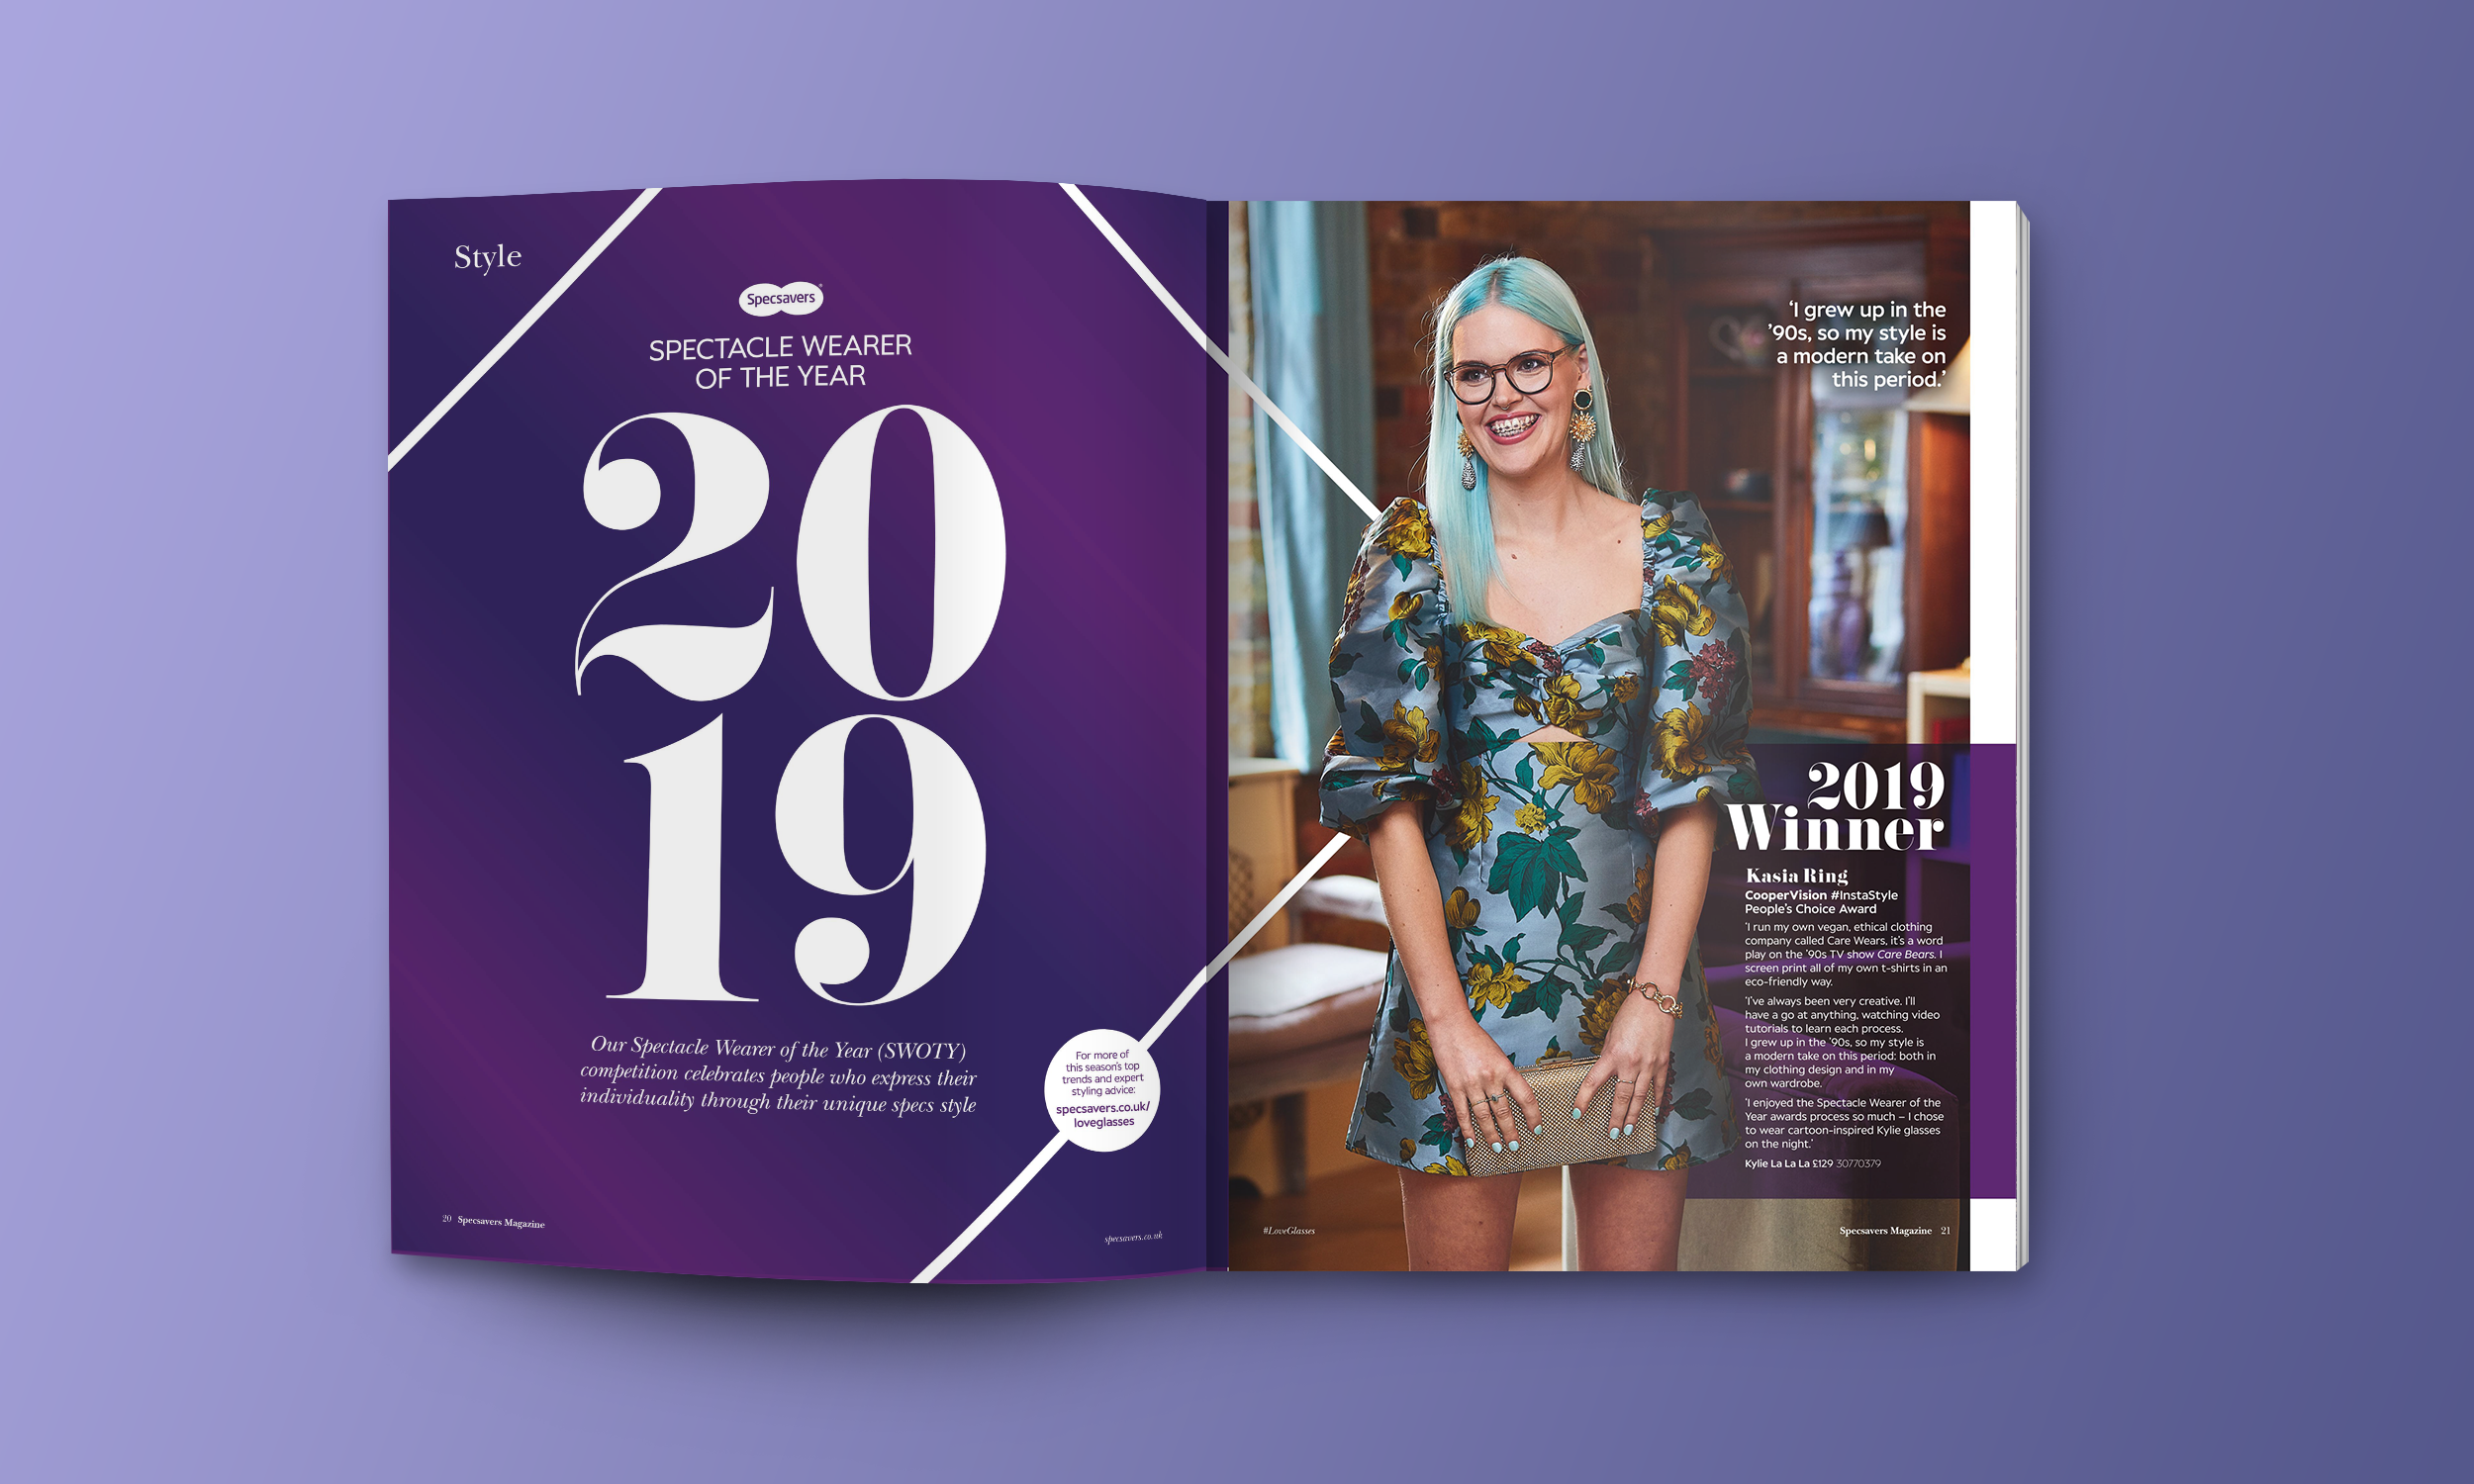 Specsavers Magazine - Spectacle Wearer Of The Year